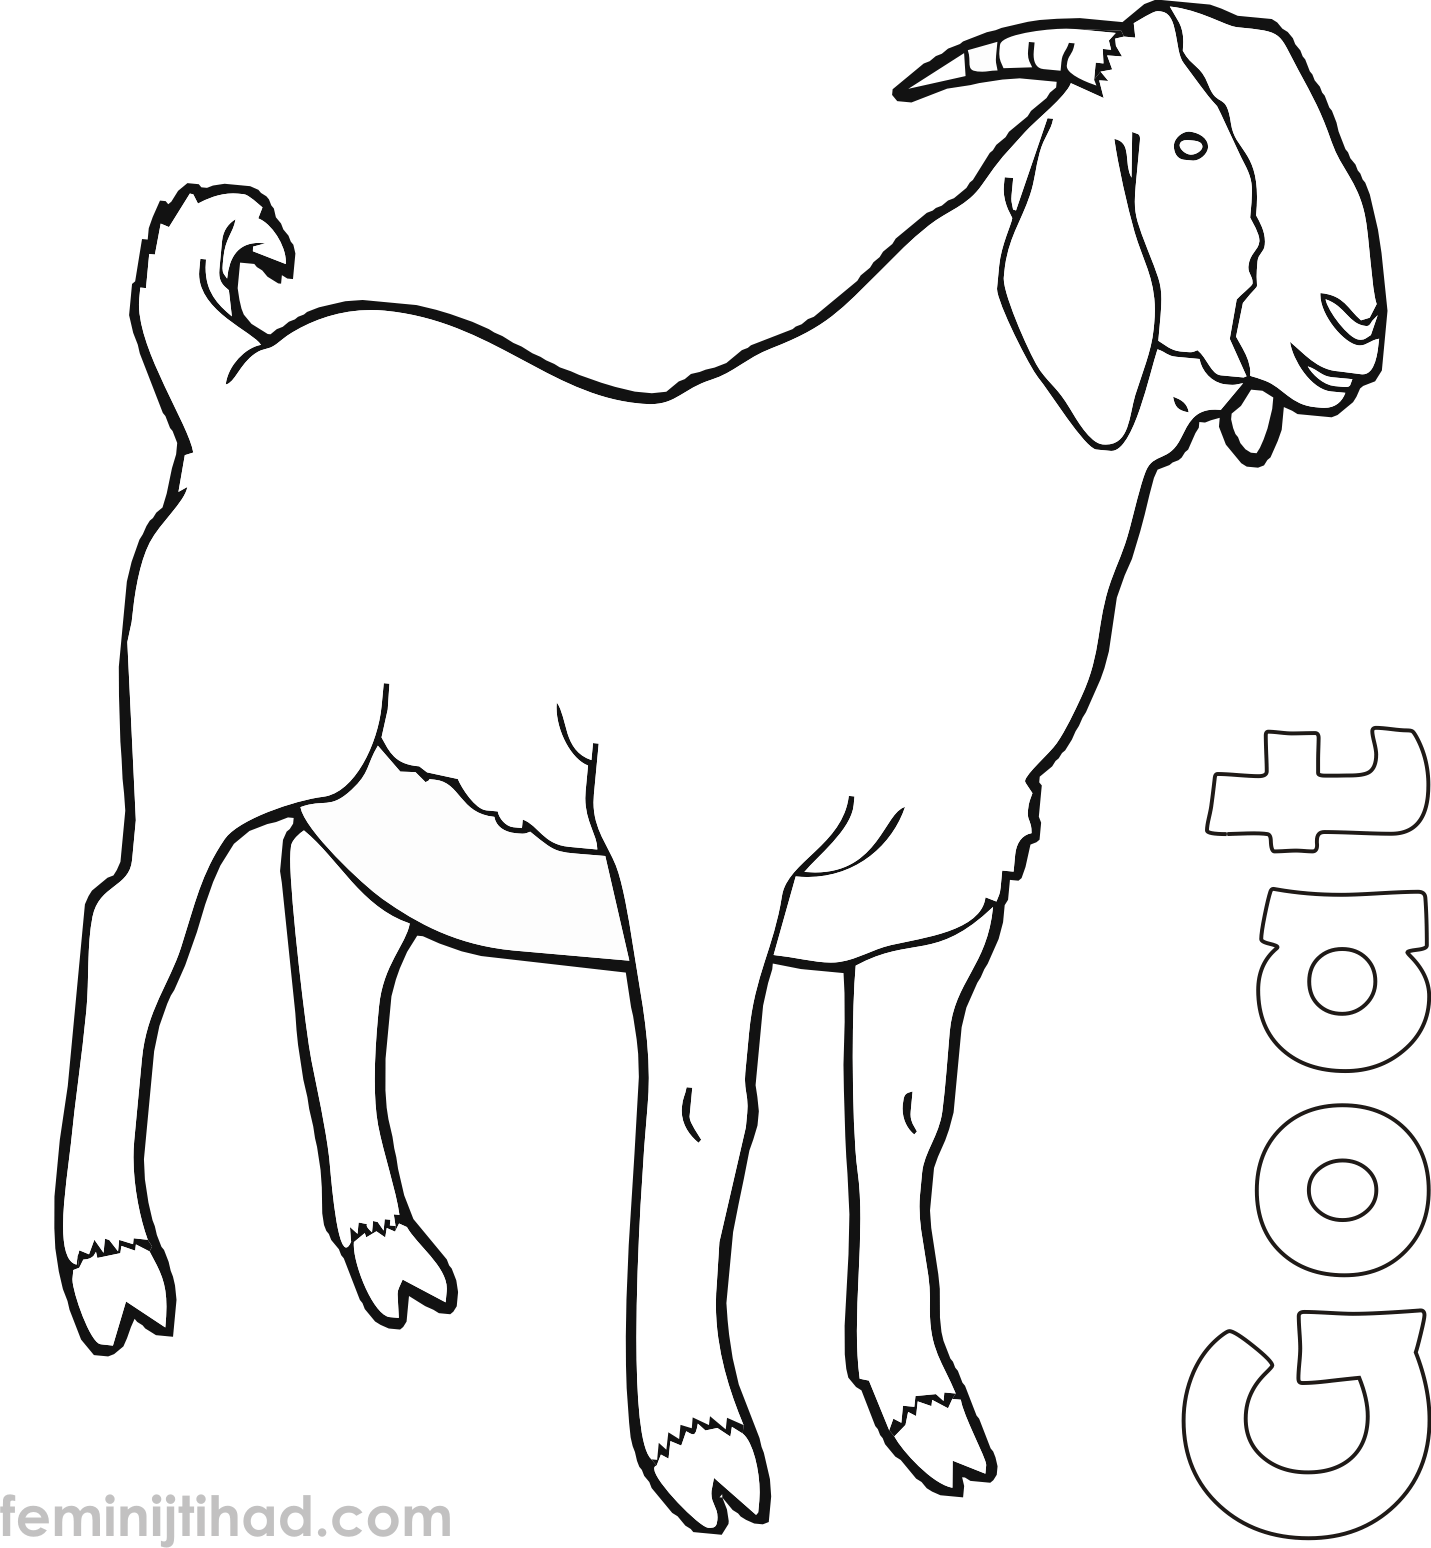 Cute Goat Coloring Pages Printable Cute Goats Animal Printables Animal Coloring Pages